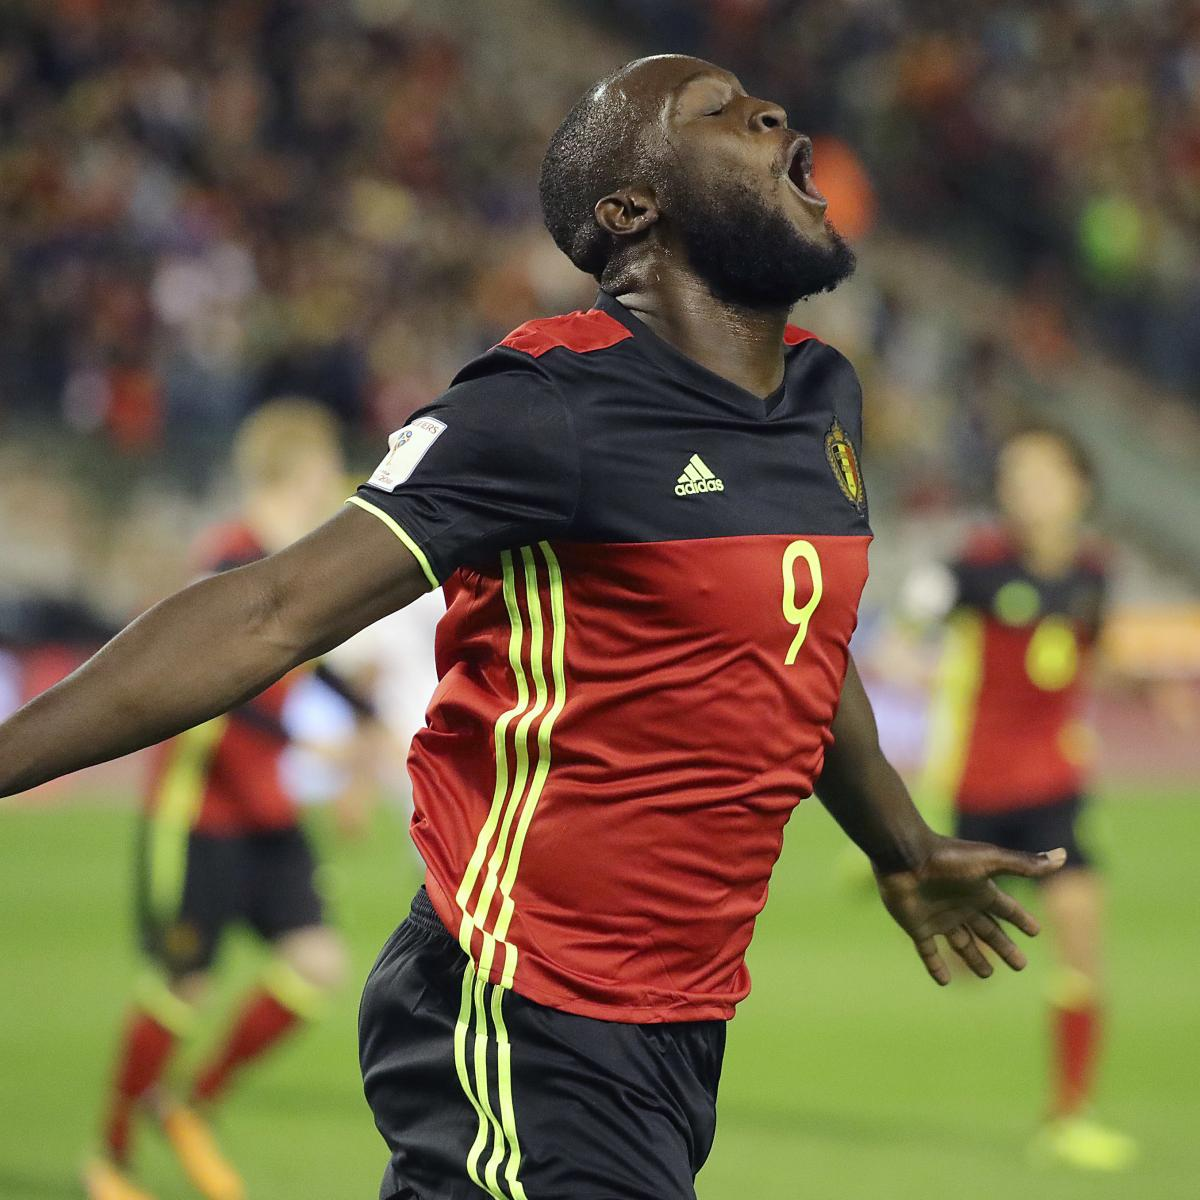 Belgium Defeats Cyprus 4-0 in 2018 World Cup Qualifier; Eden Hazard Earns Brace